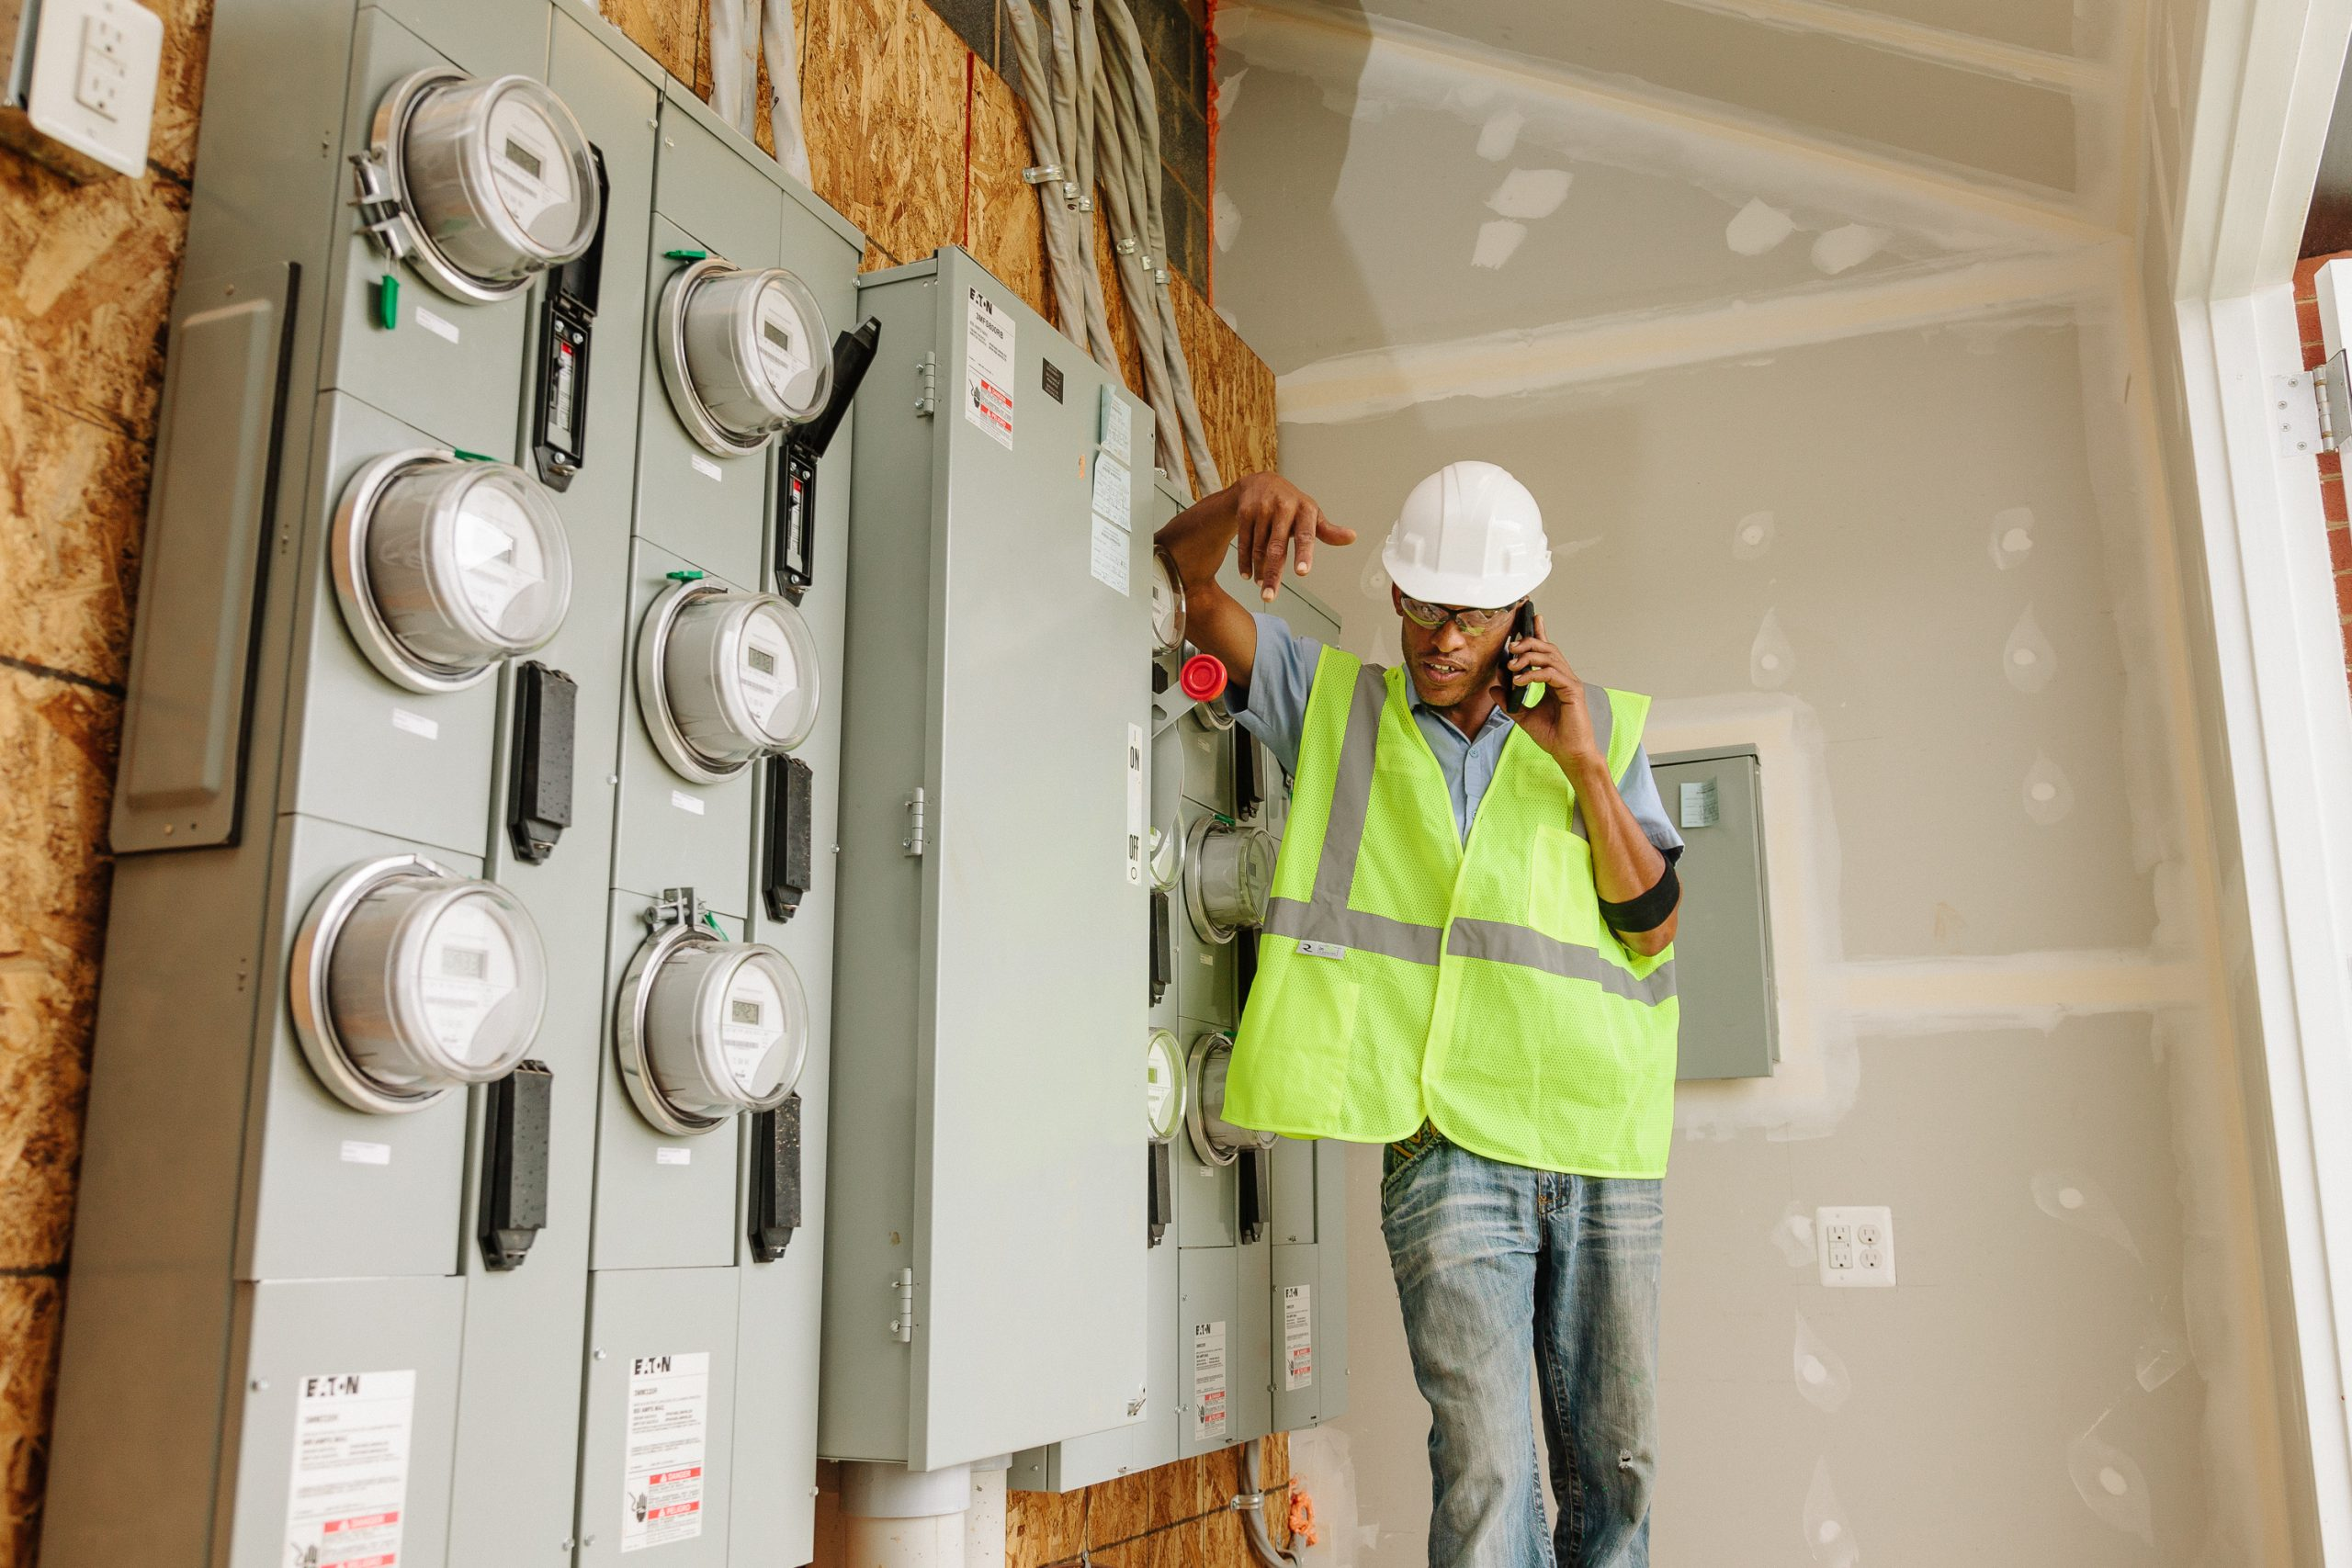 Search for Quality Electrical Repairs in Montgomery, Al